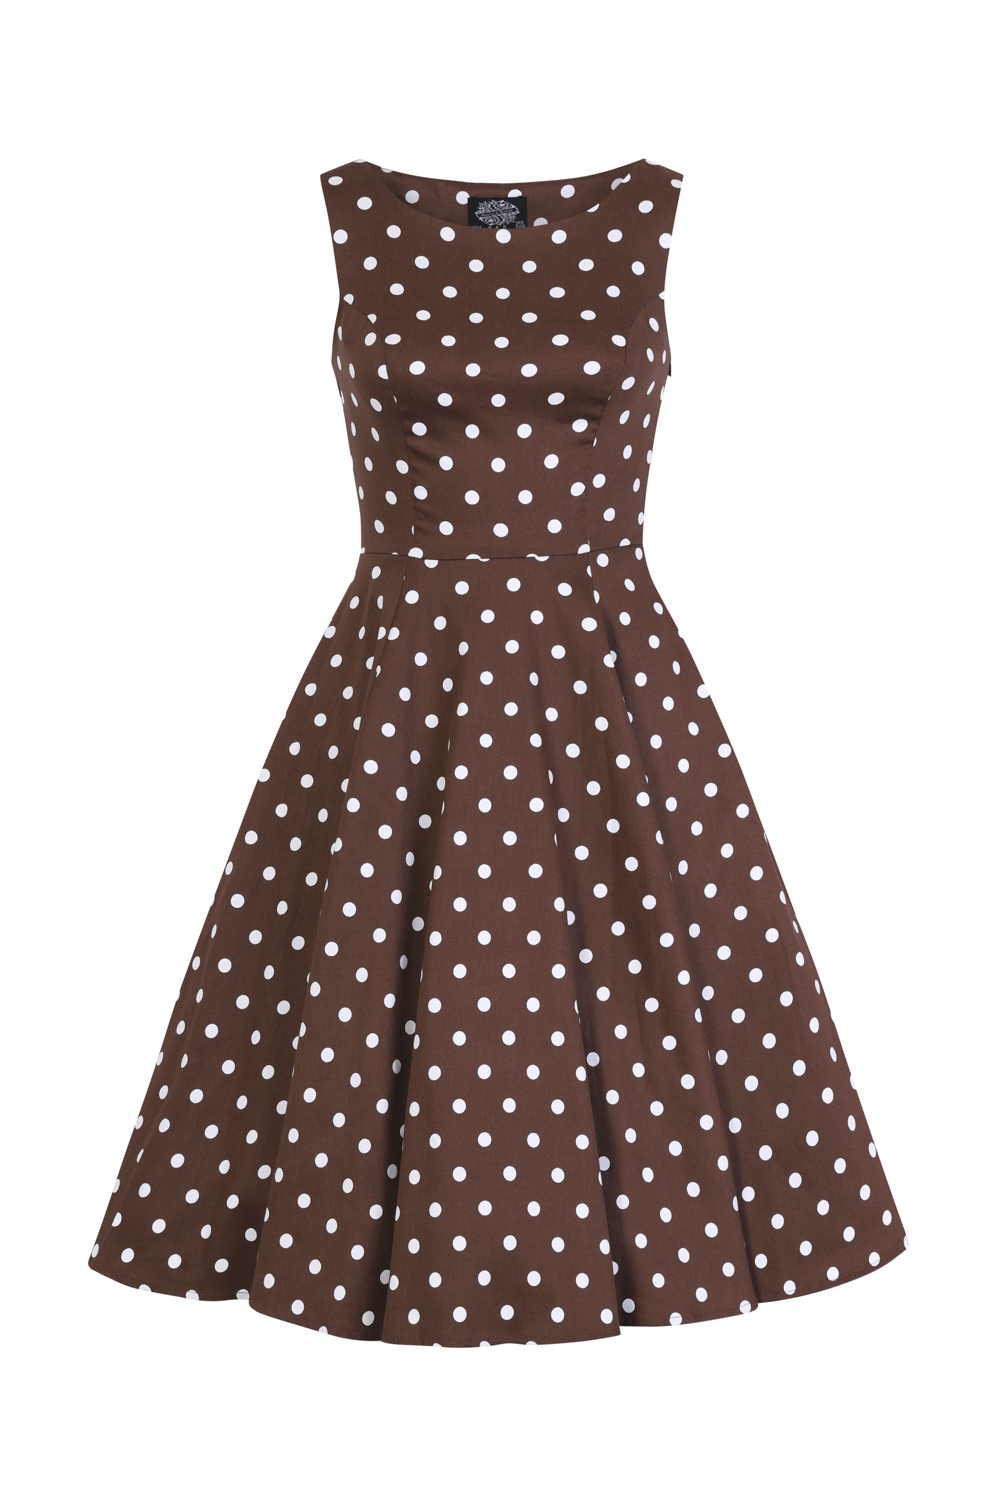 Cindy Polka Dot Swing Dress in Chocolate Brown